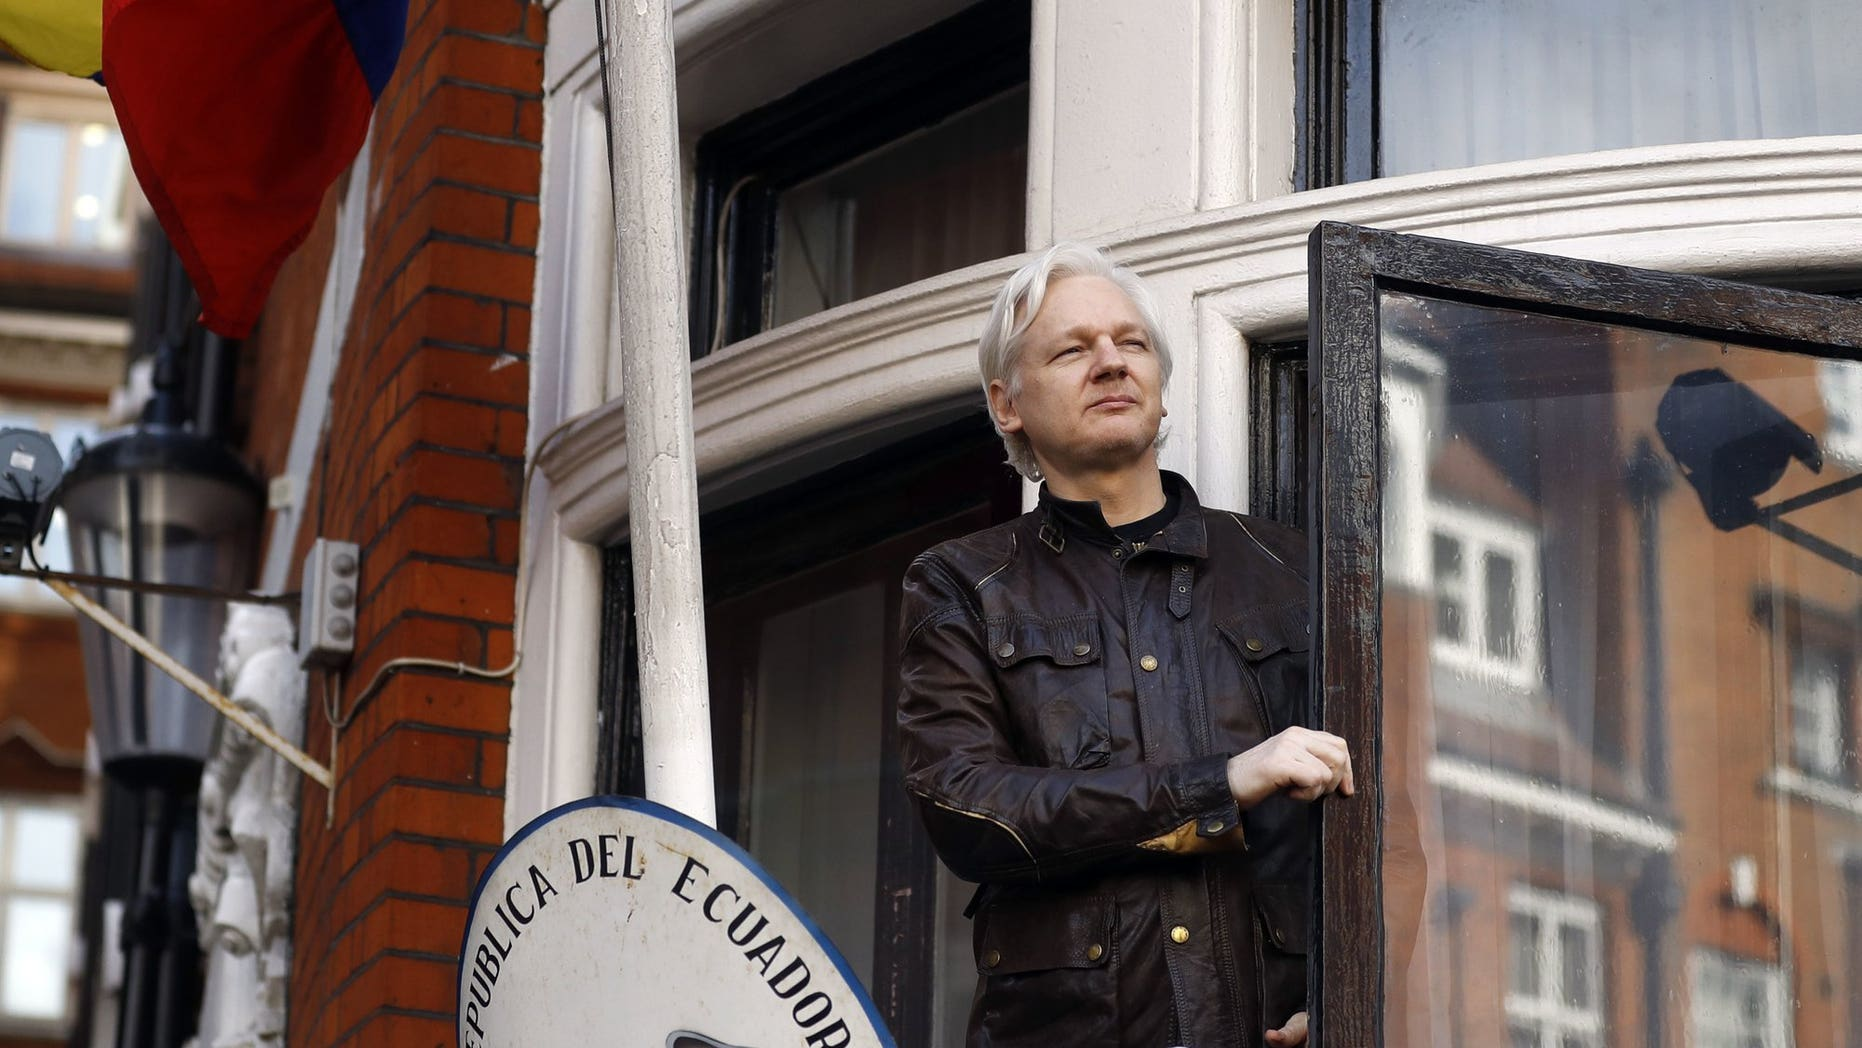 WikiLeaks founder Julian Assange greets supporters outside the Ecuadorian Embassy in London, May 19, 2017. (Associated Press)